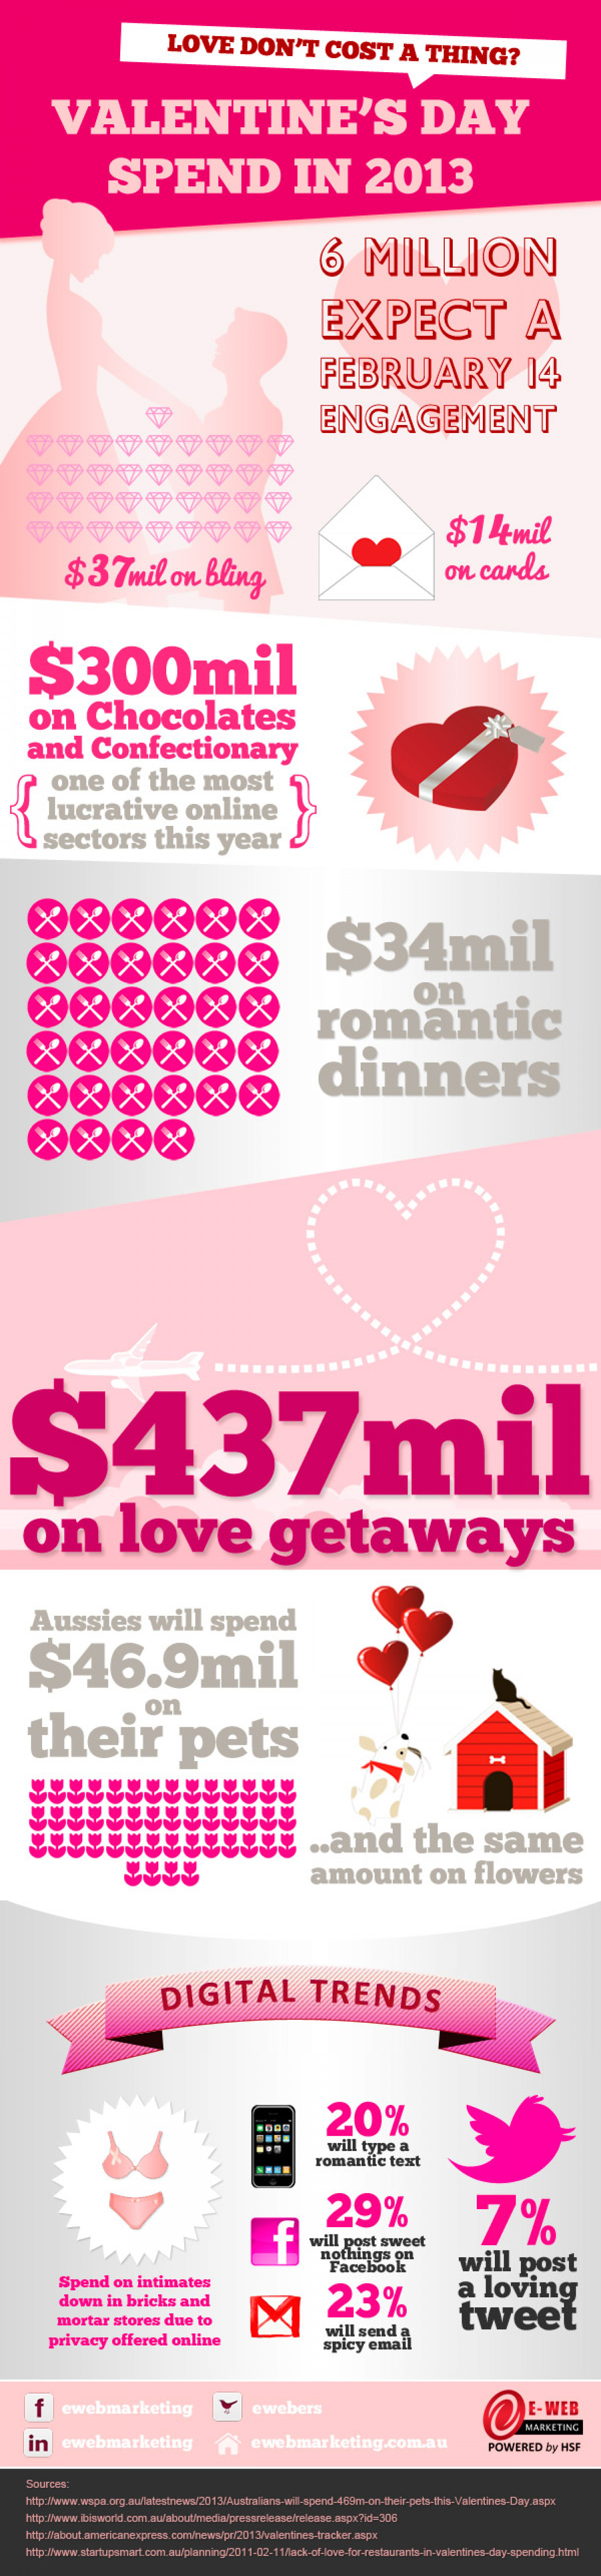 Valentine's Day Spend in 2013 Infographic